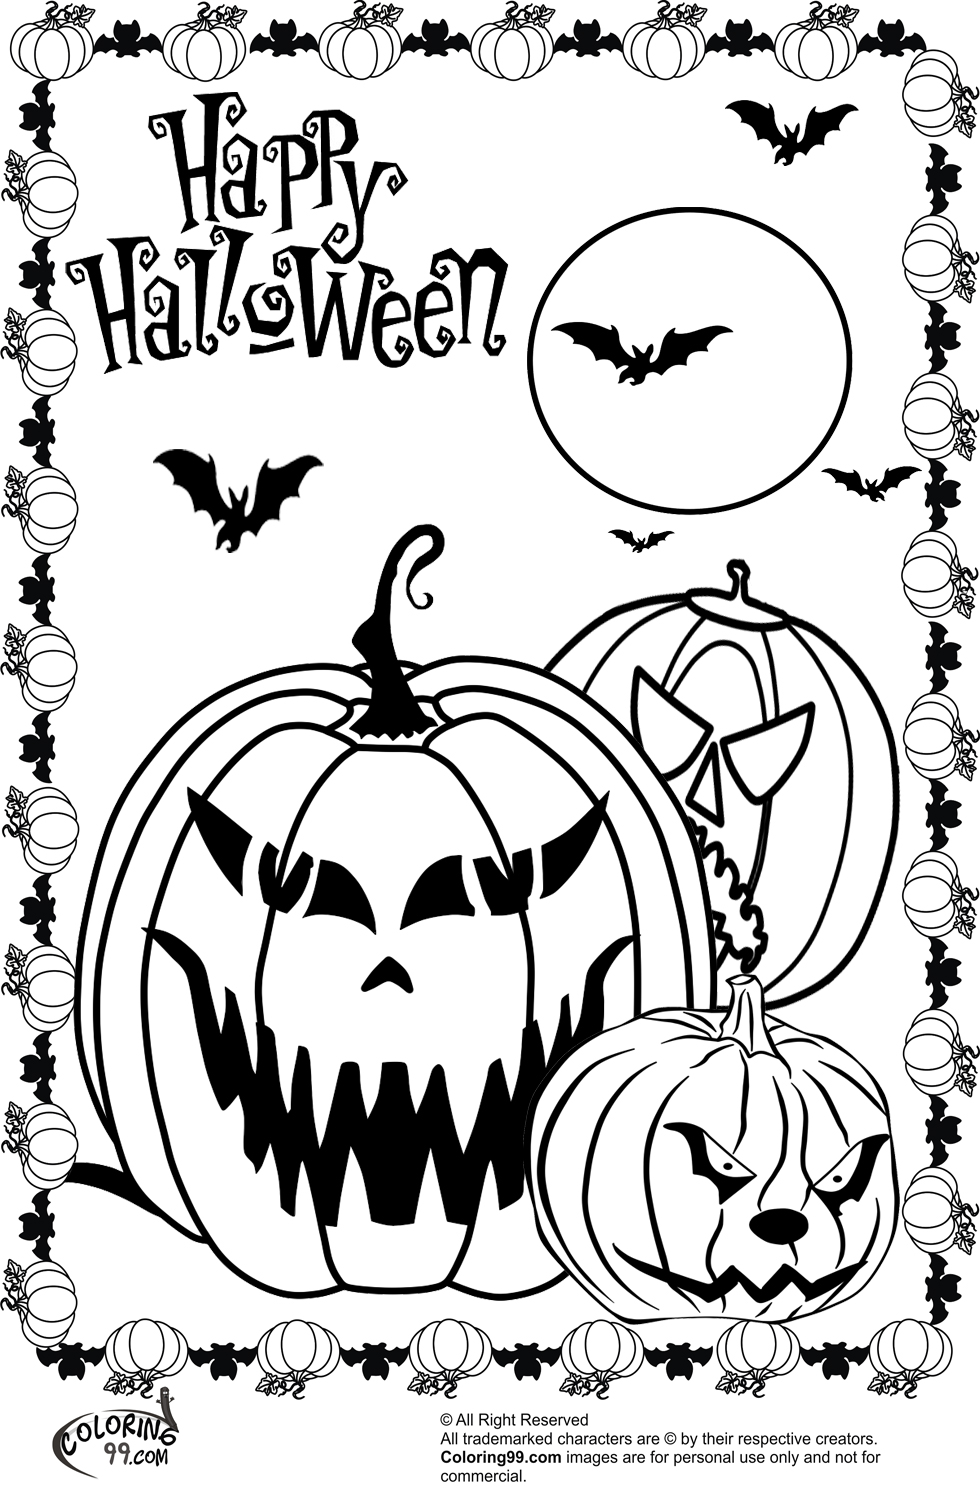 halloween pictures of pumpkins to color 50 free printable halloween coloring pages for kids halloween color pumpkins to pictures of